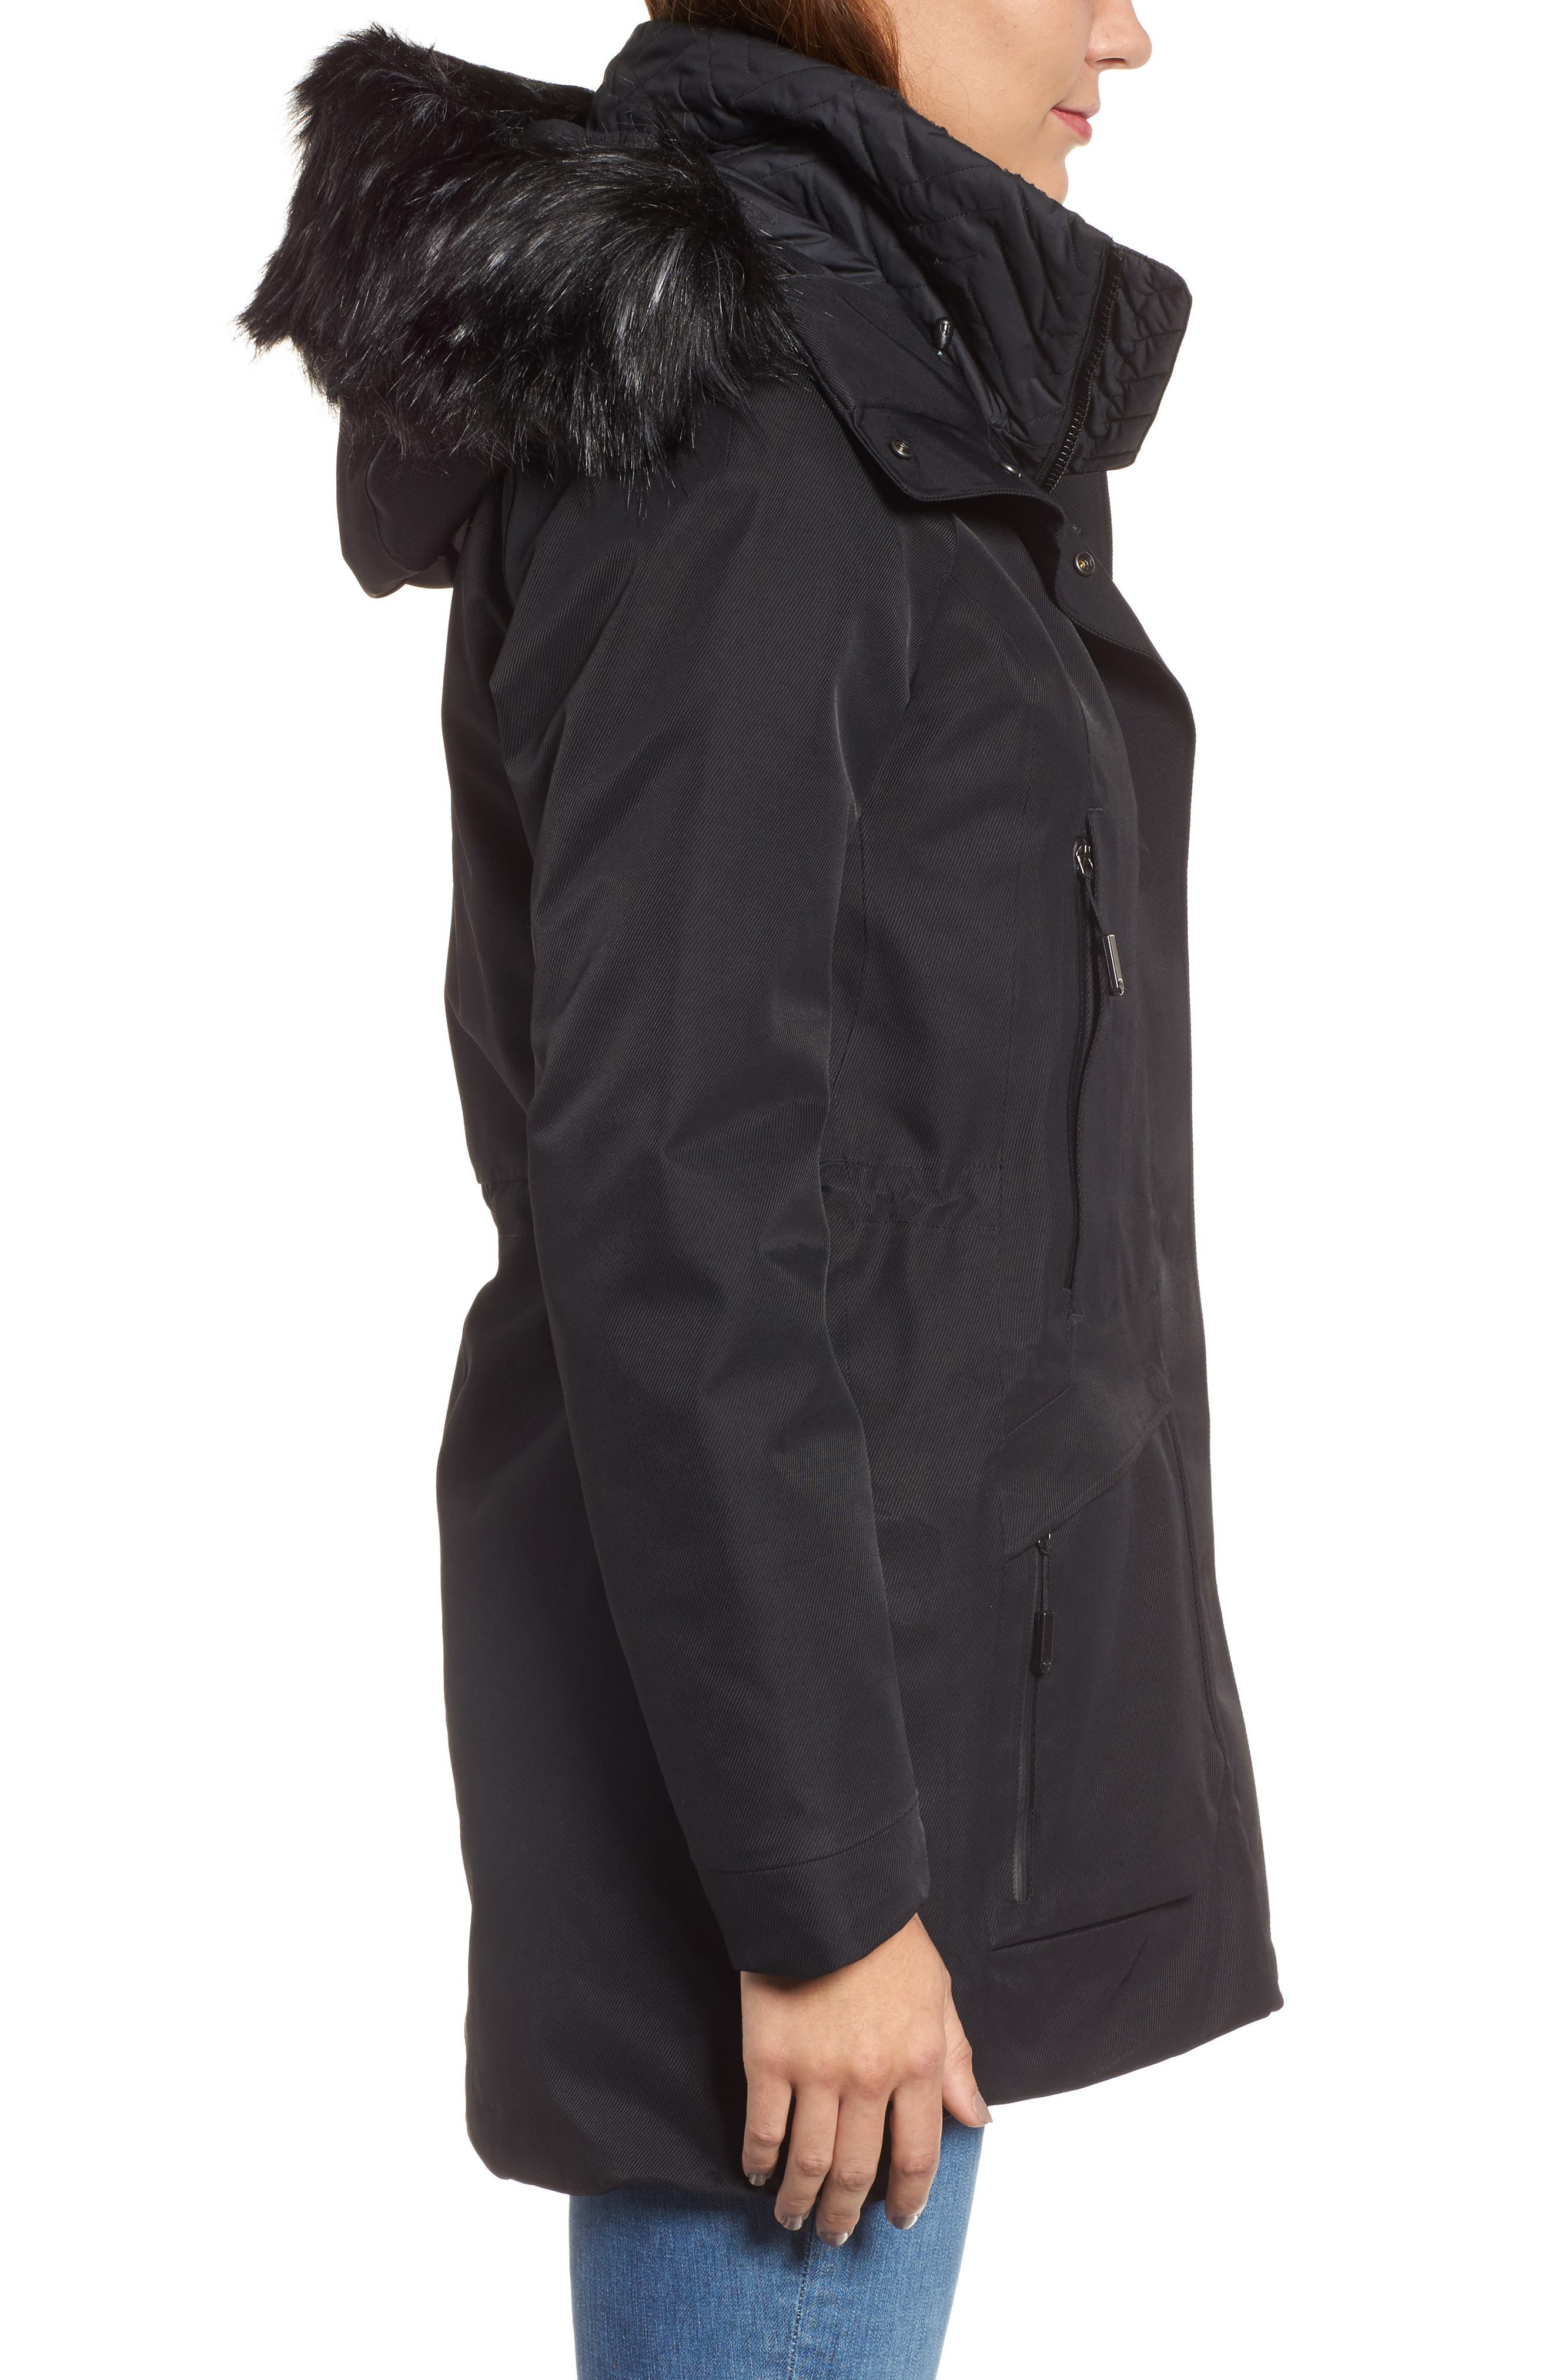 Cryos Gore-Tex<sup>®</sup> Tri-Climate PrimaLoft Gold Insulated Waterproof & Windproof Jacket,                             Alternate thumbnail 3, color,                             001